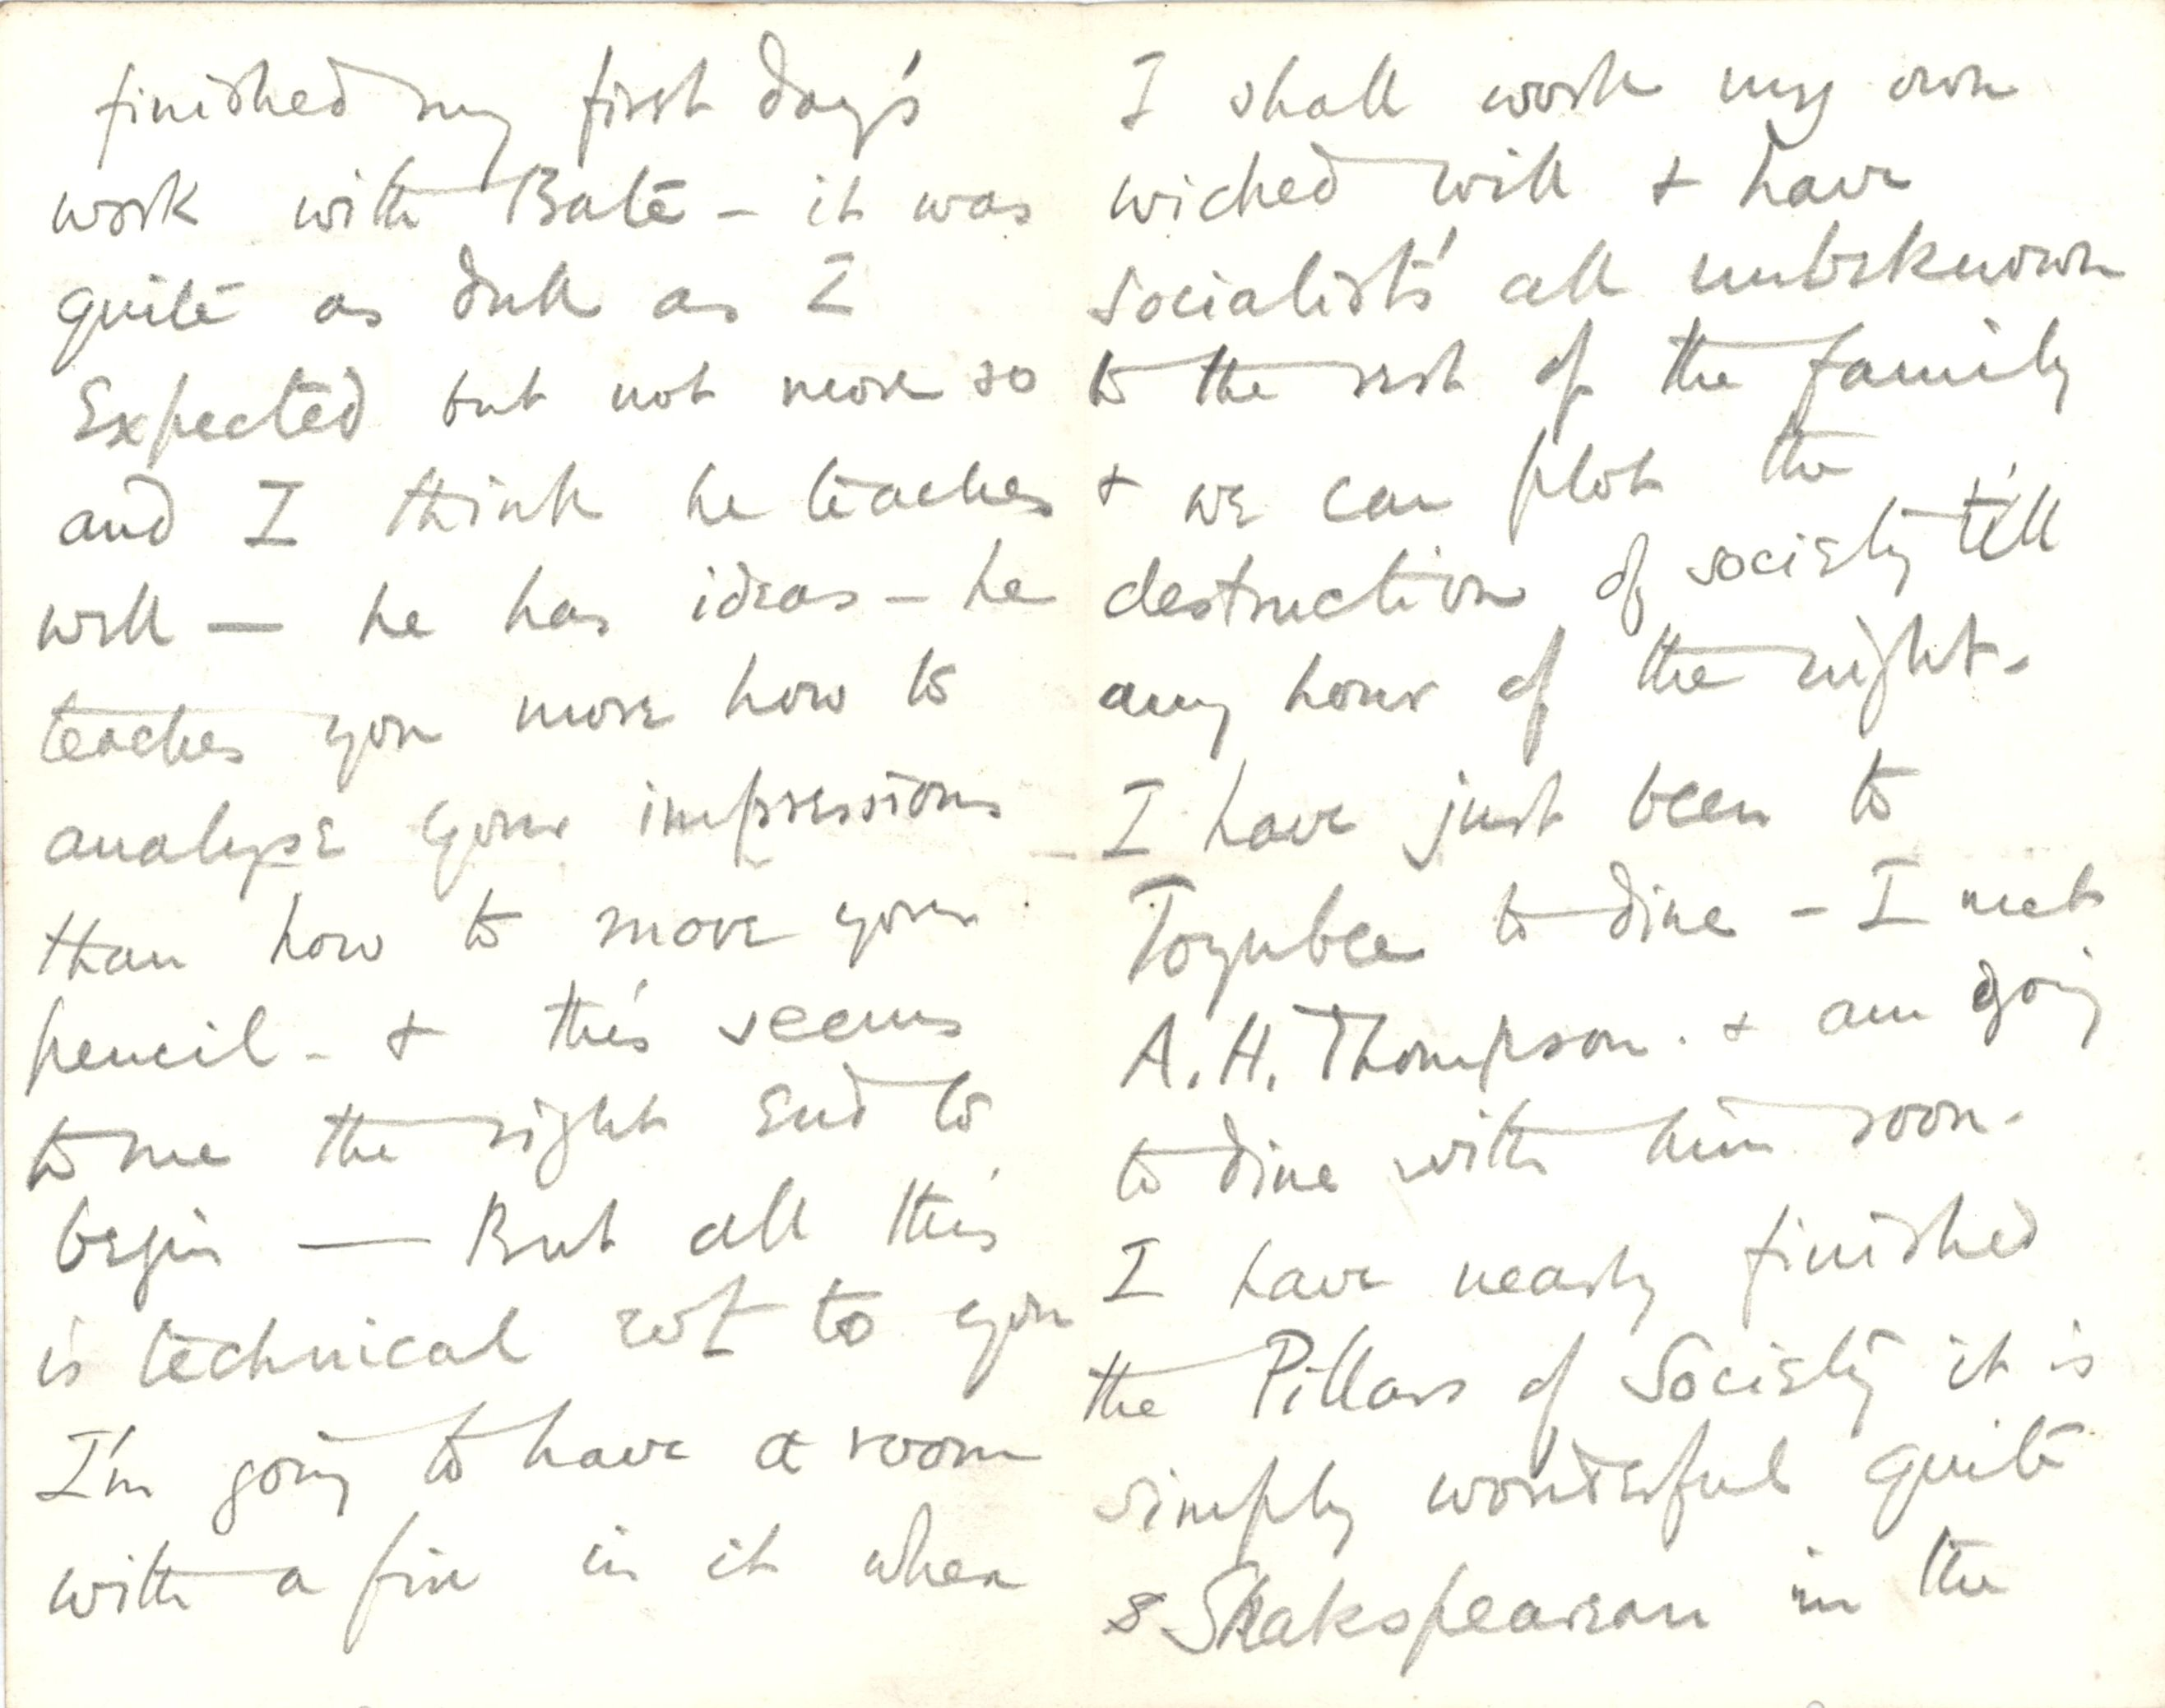 Letter from Roger Fry to Dickinson, 24 January 1889, giving his first impressions of Bates' studio. [REF/3/46/2]